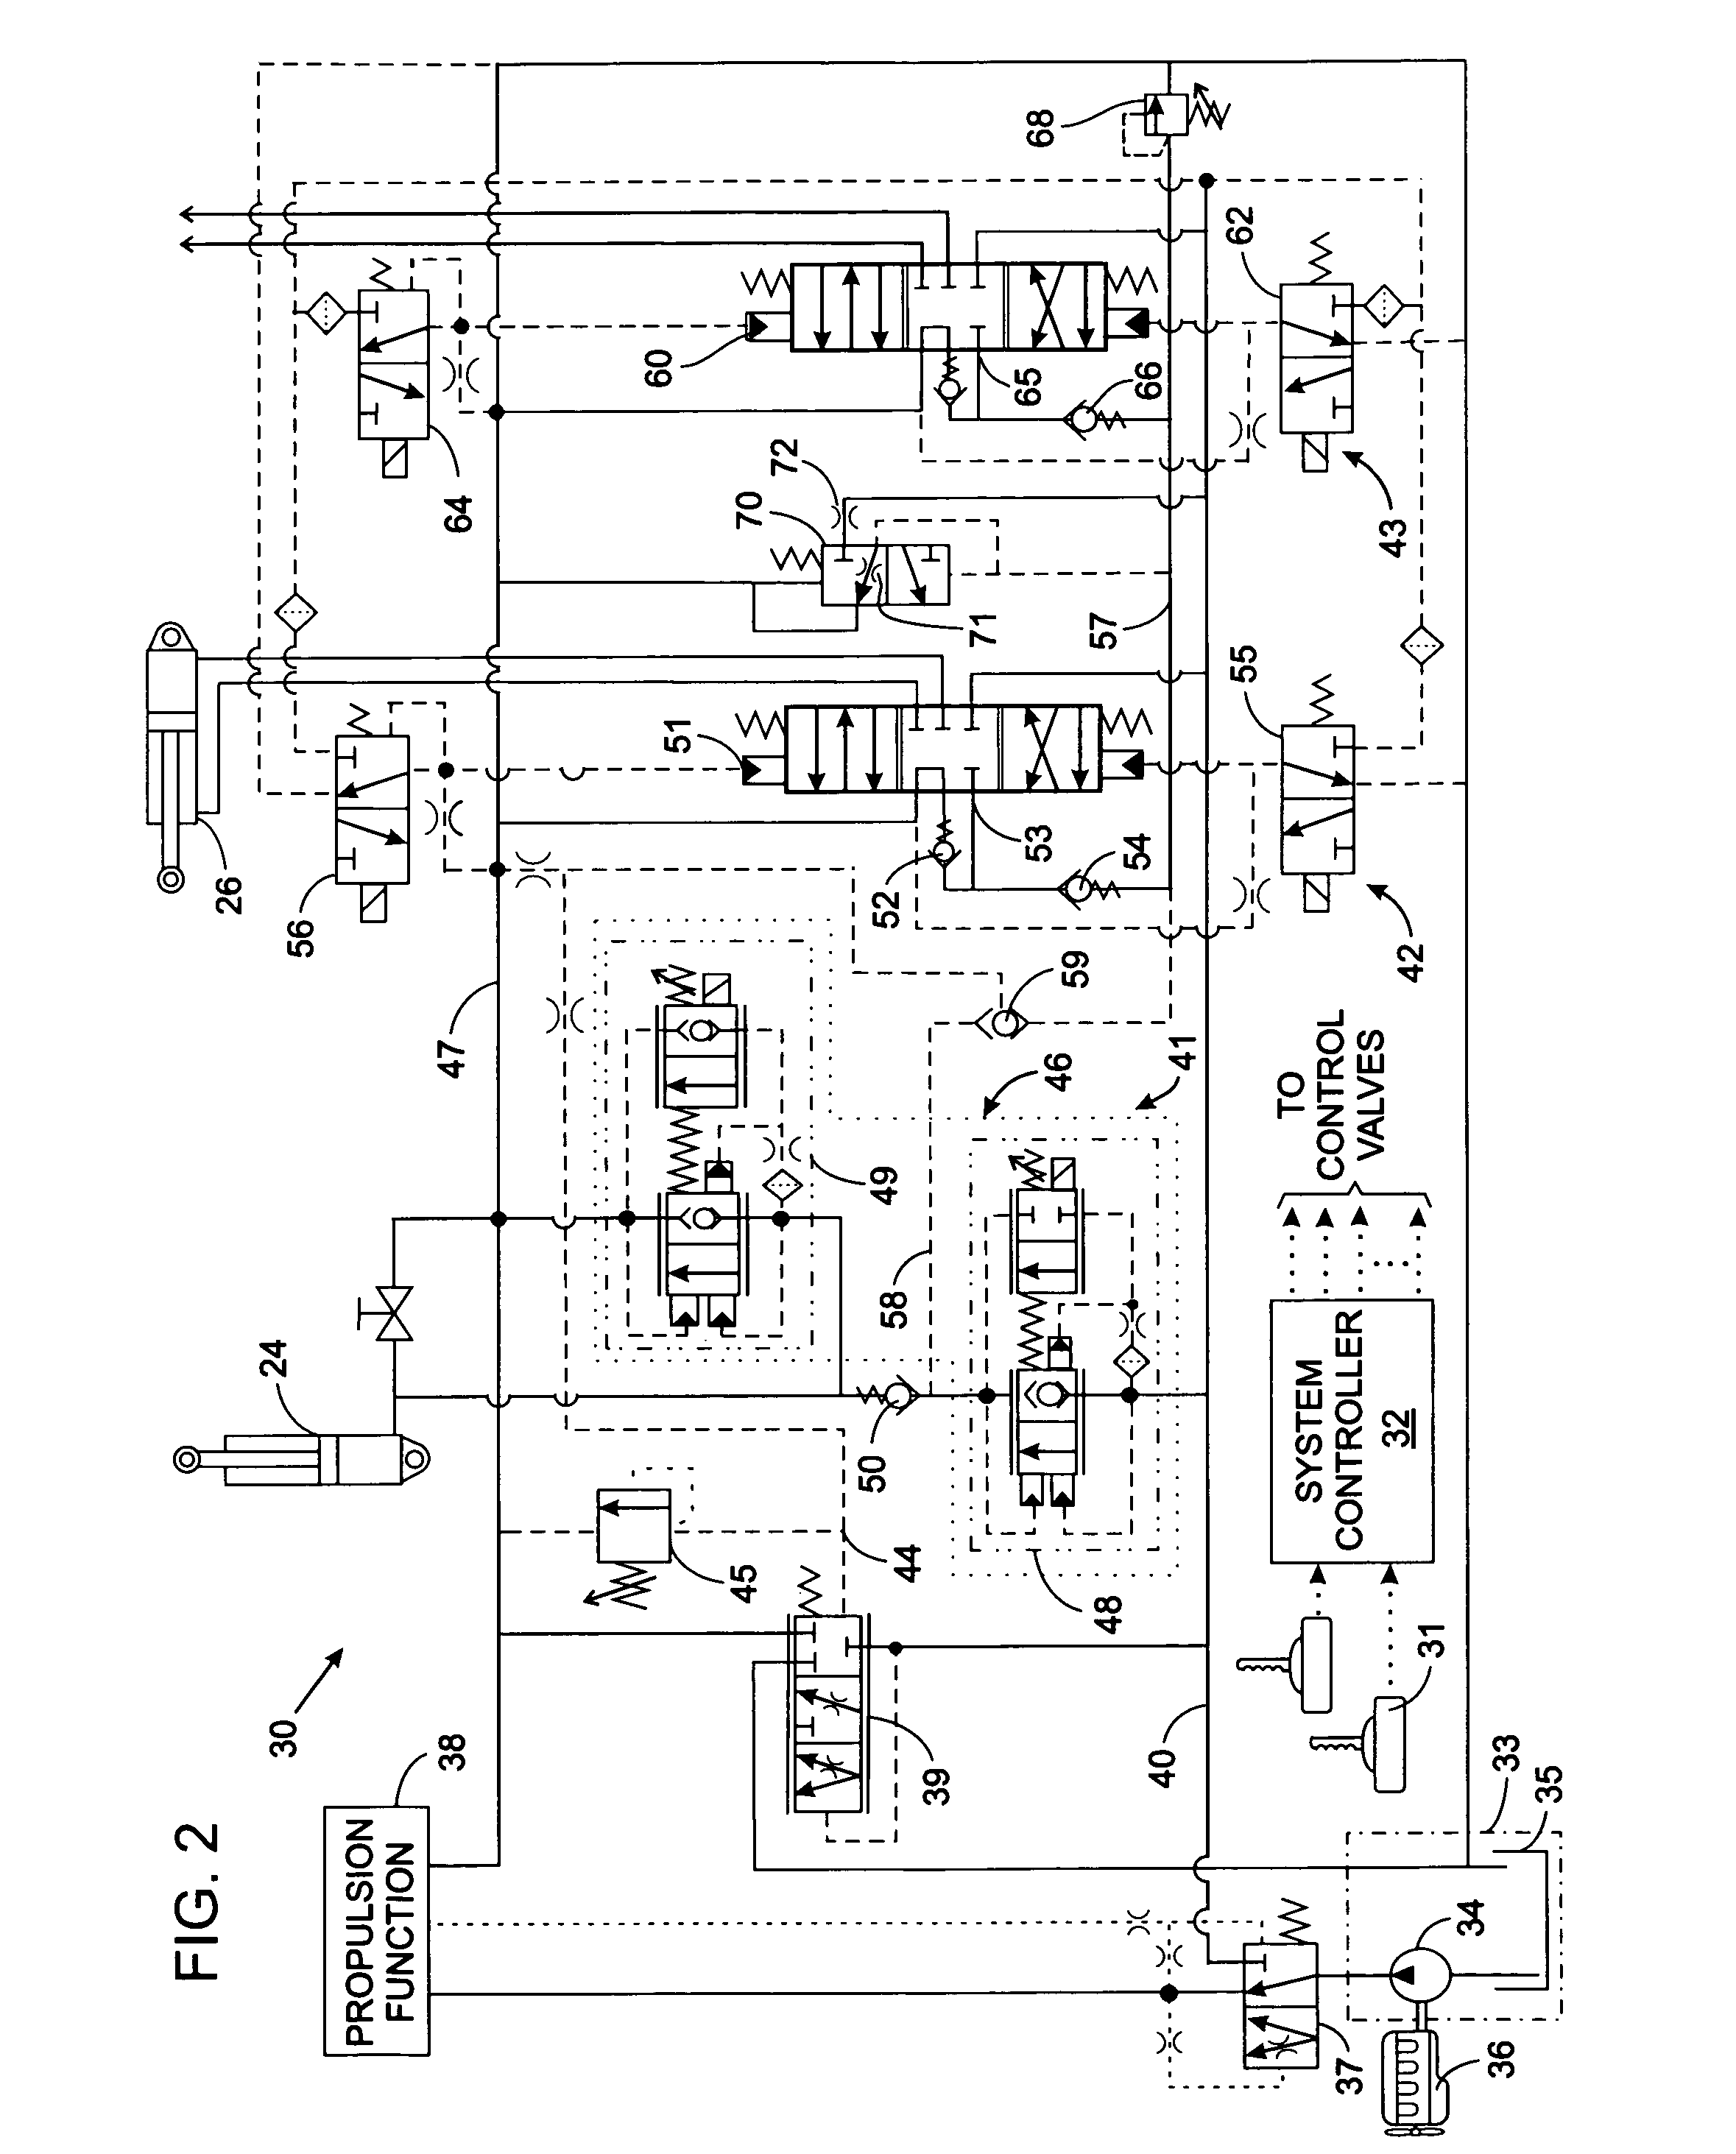 Skytrak Wiring Diagram in addition US7484814 also Primer Pipe Supports further US6055902 further P 0900c15280216444. on load sense hydraulic schematic